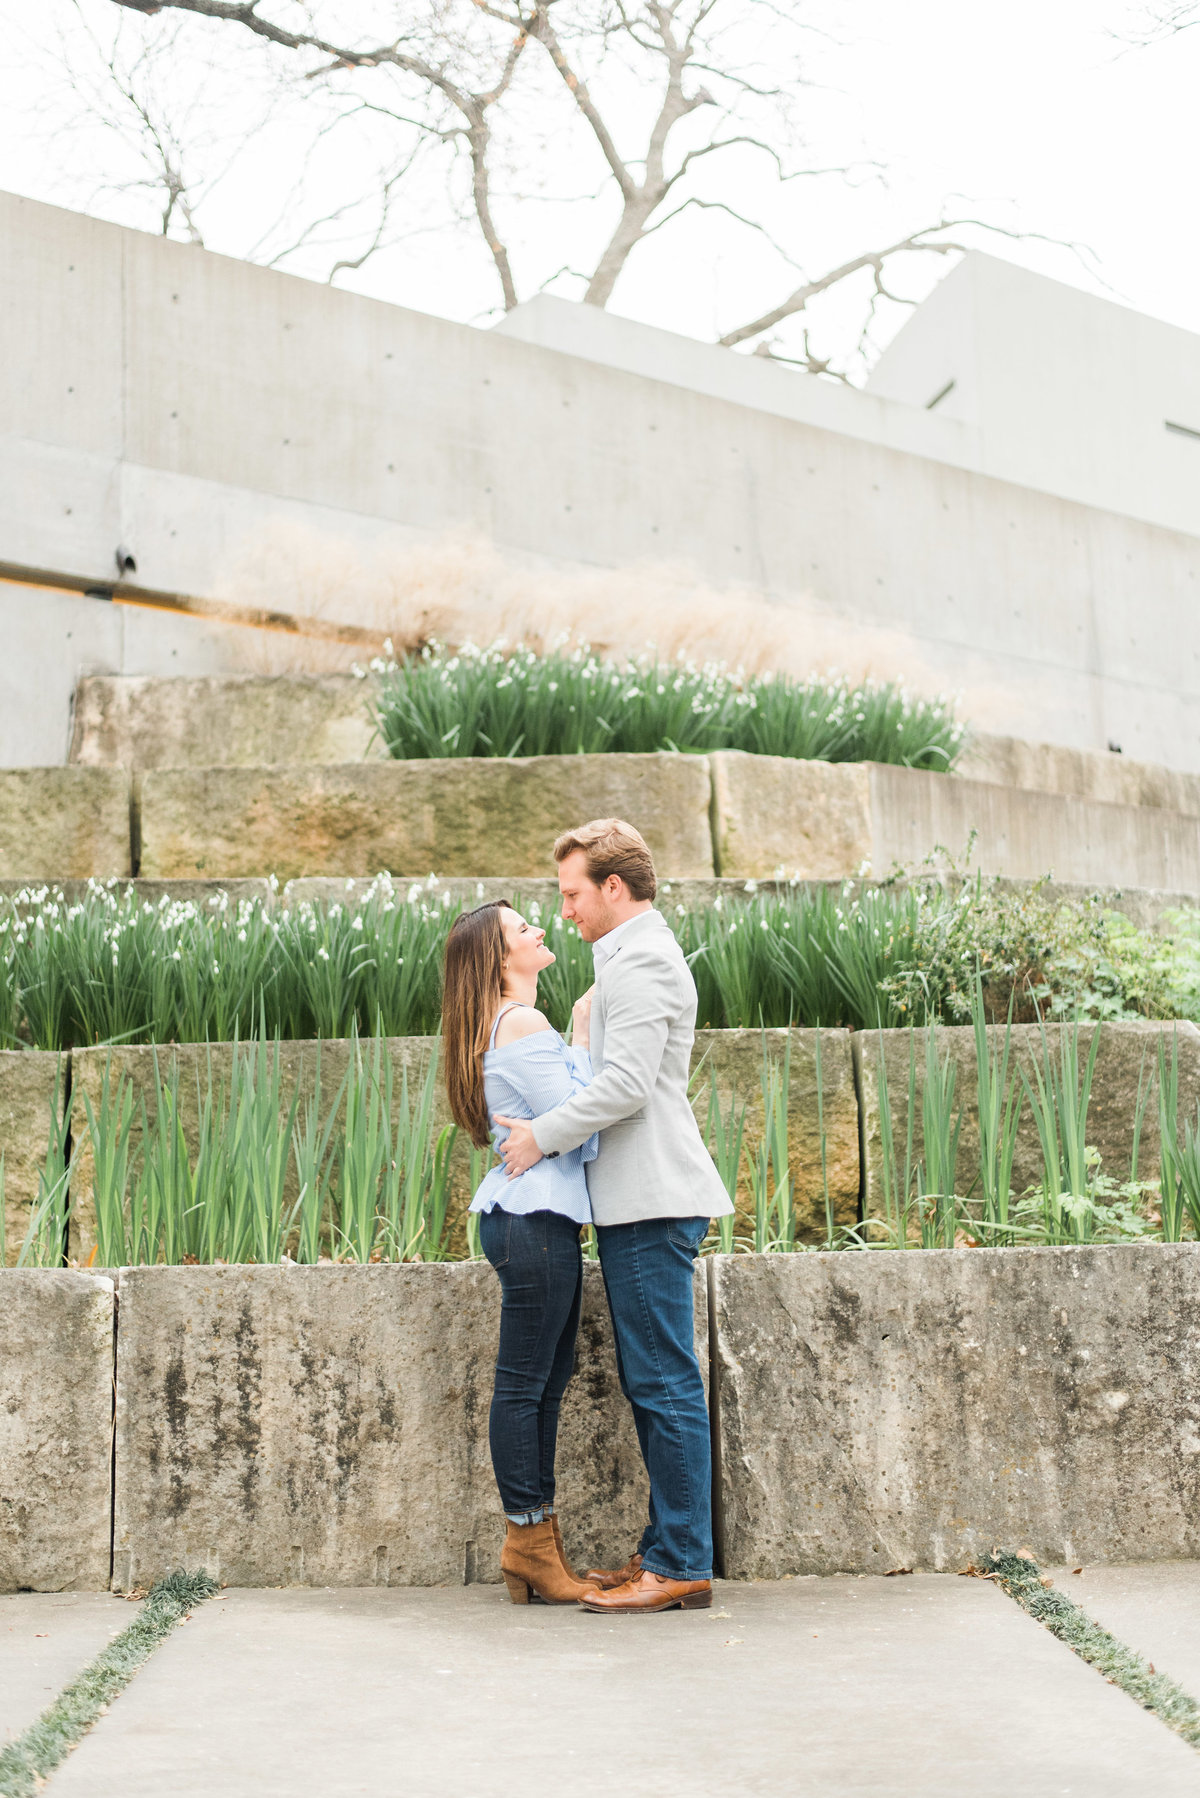 engagement photos couple in concrete garden